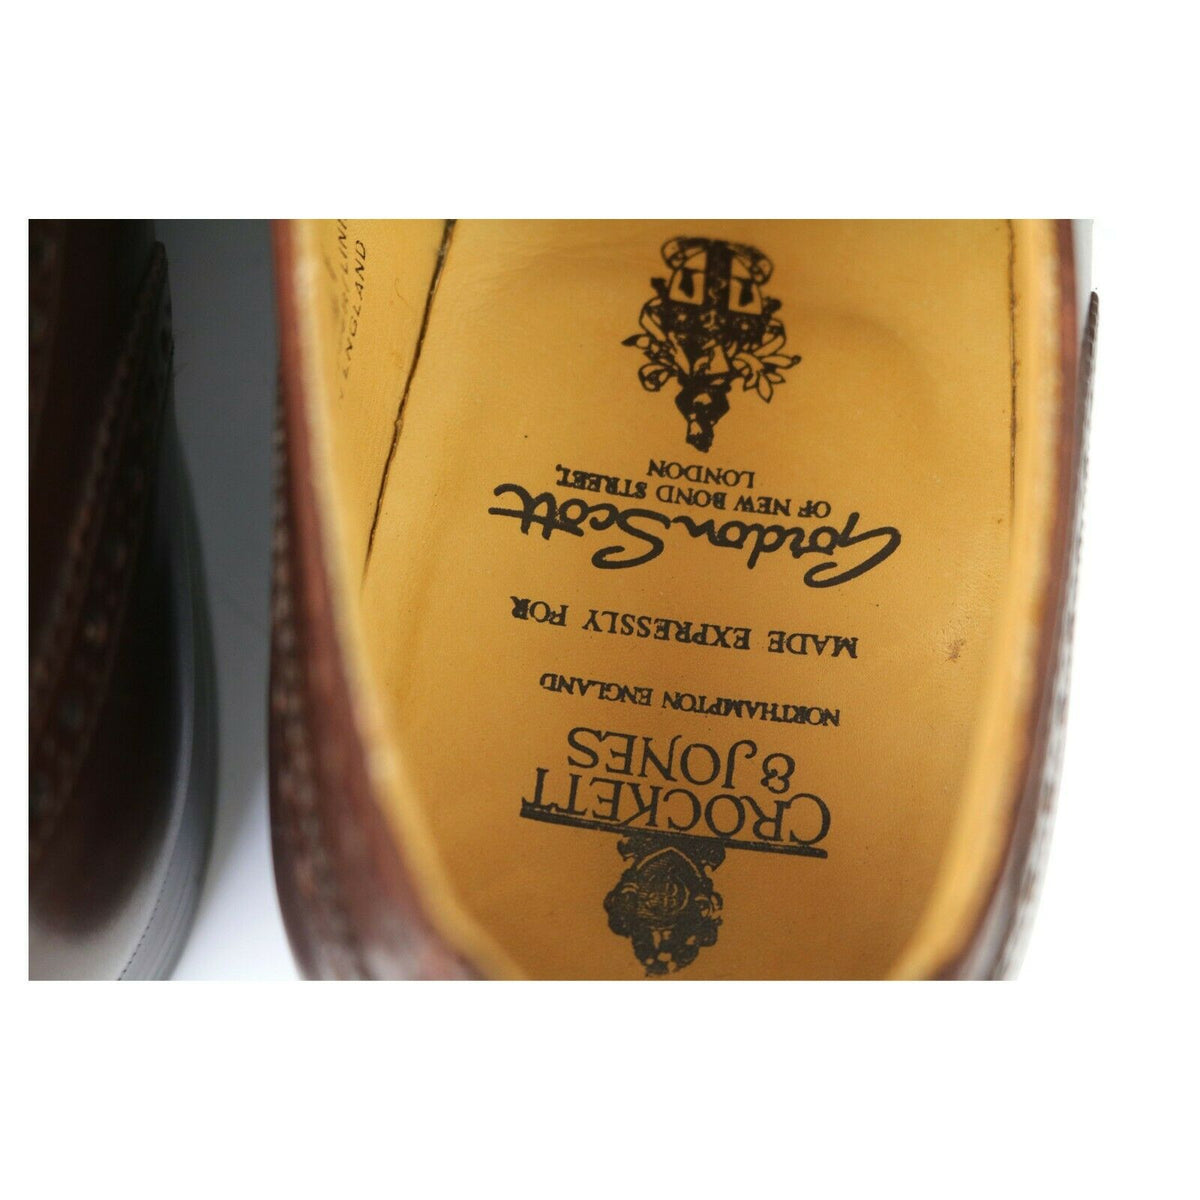 Crockett & Jones 'Plymouth' Brown Leather Oxford Brogues UK 9.5 F